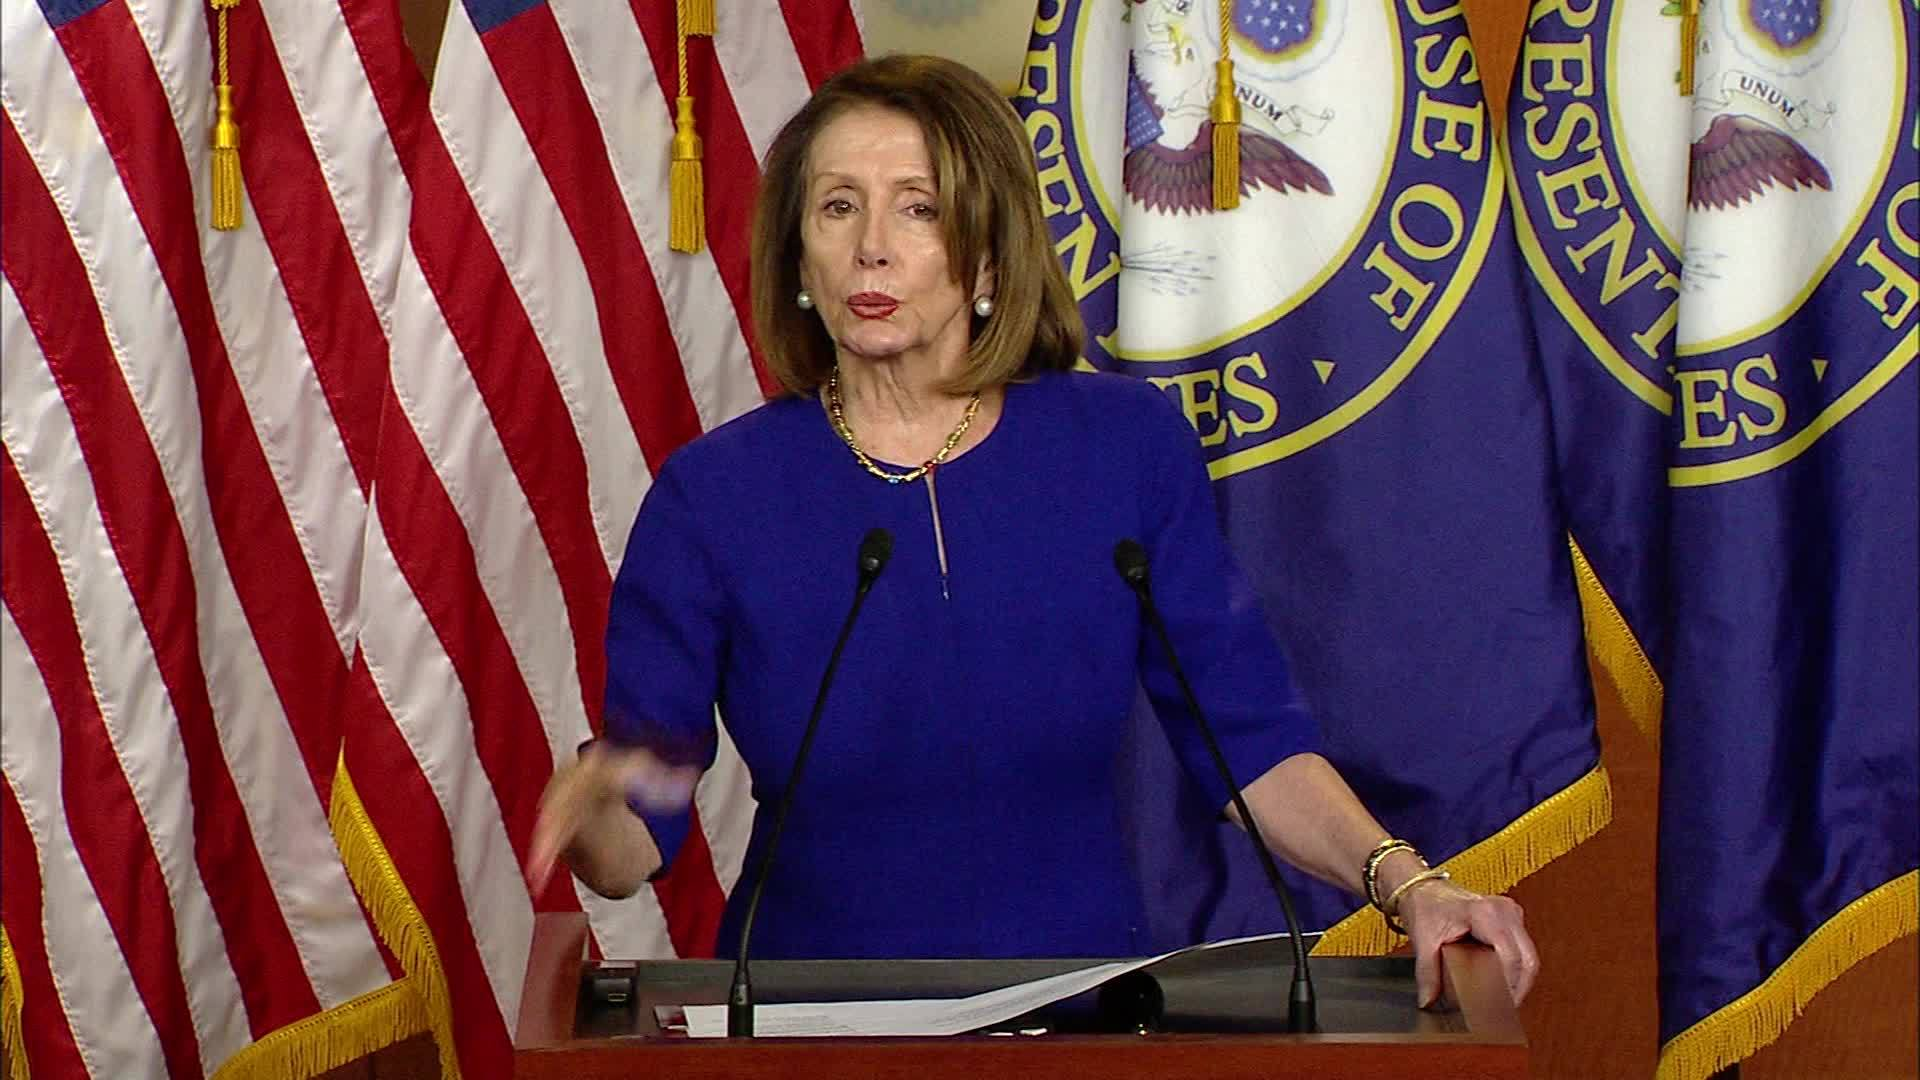 Pelosi__House_to_condemn__forms_of_hatre_8_20190307182923